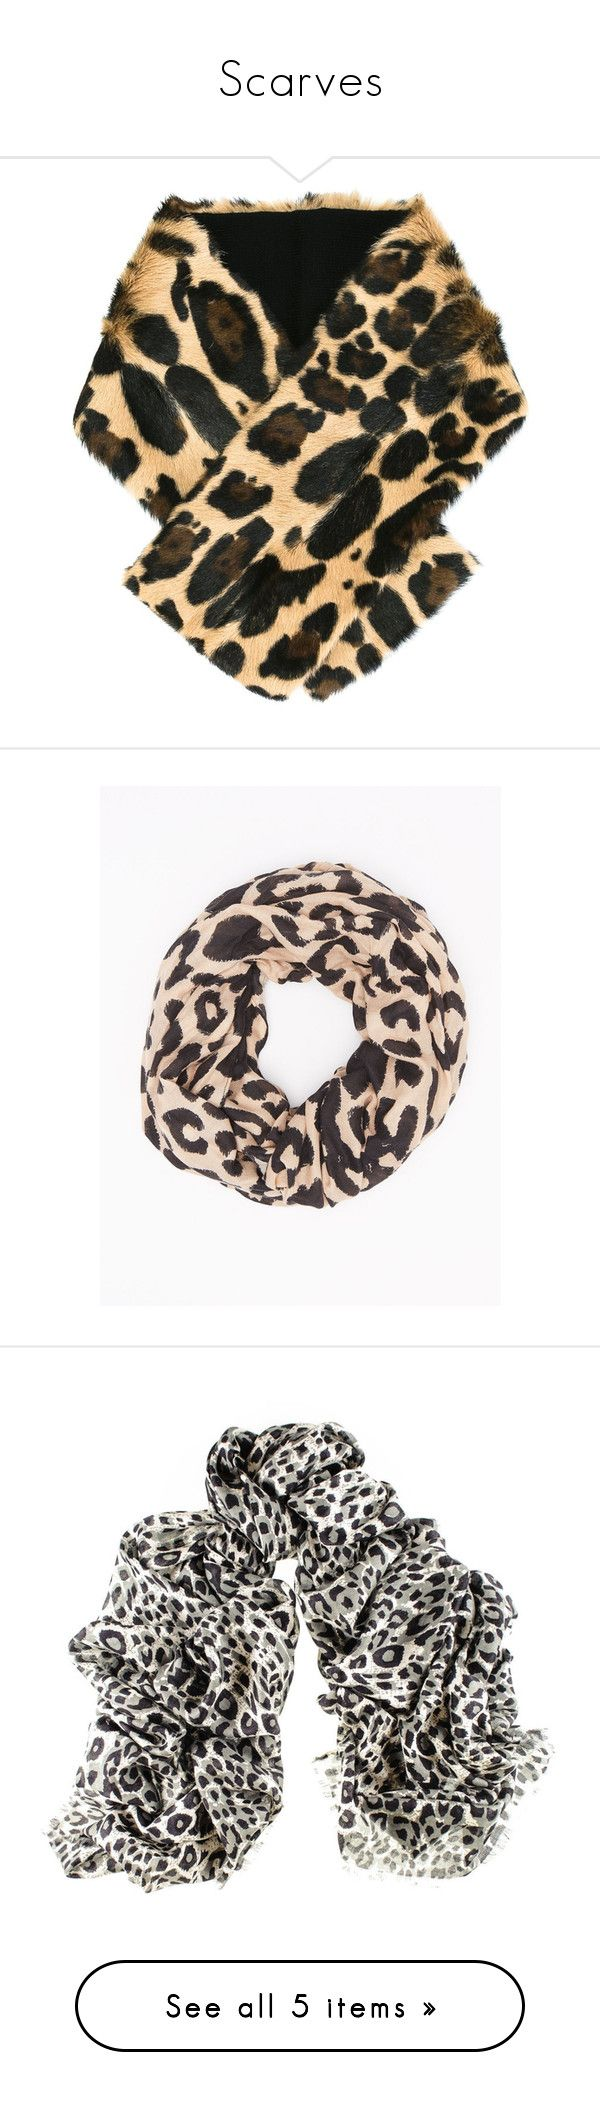 """Scarves"" by annakennedy70 ❤ liked on Polyvore featuring accessories, scarves, grey, fake fur shawl, gray scarves, grey faux fur shawl, faux fur scarves, faux fur shawl, brown and fur scarves"